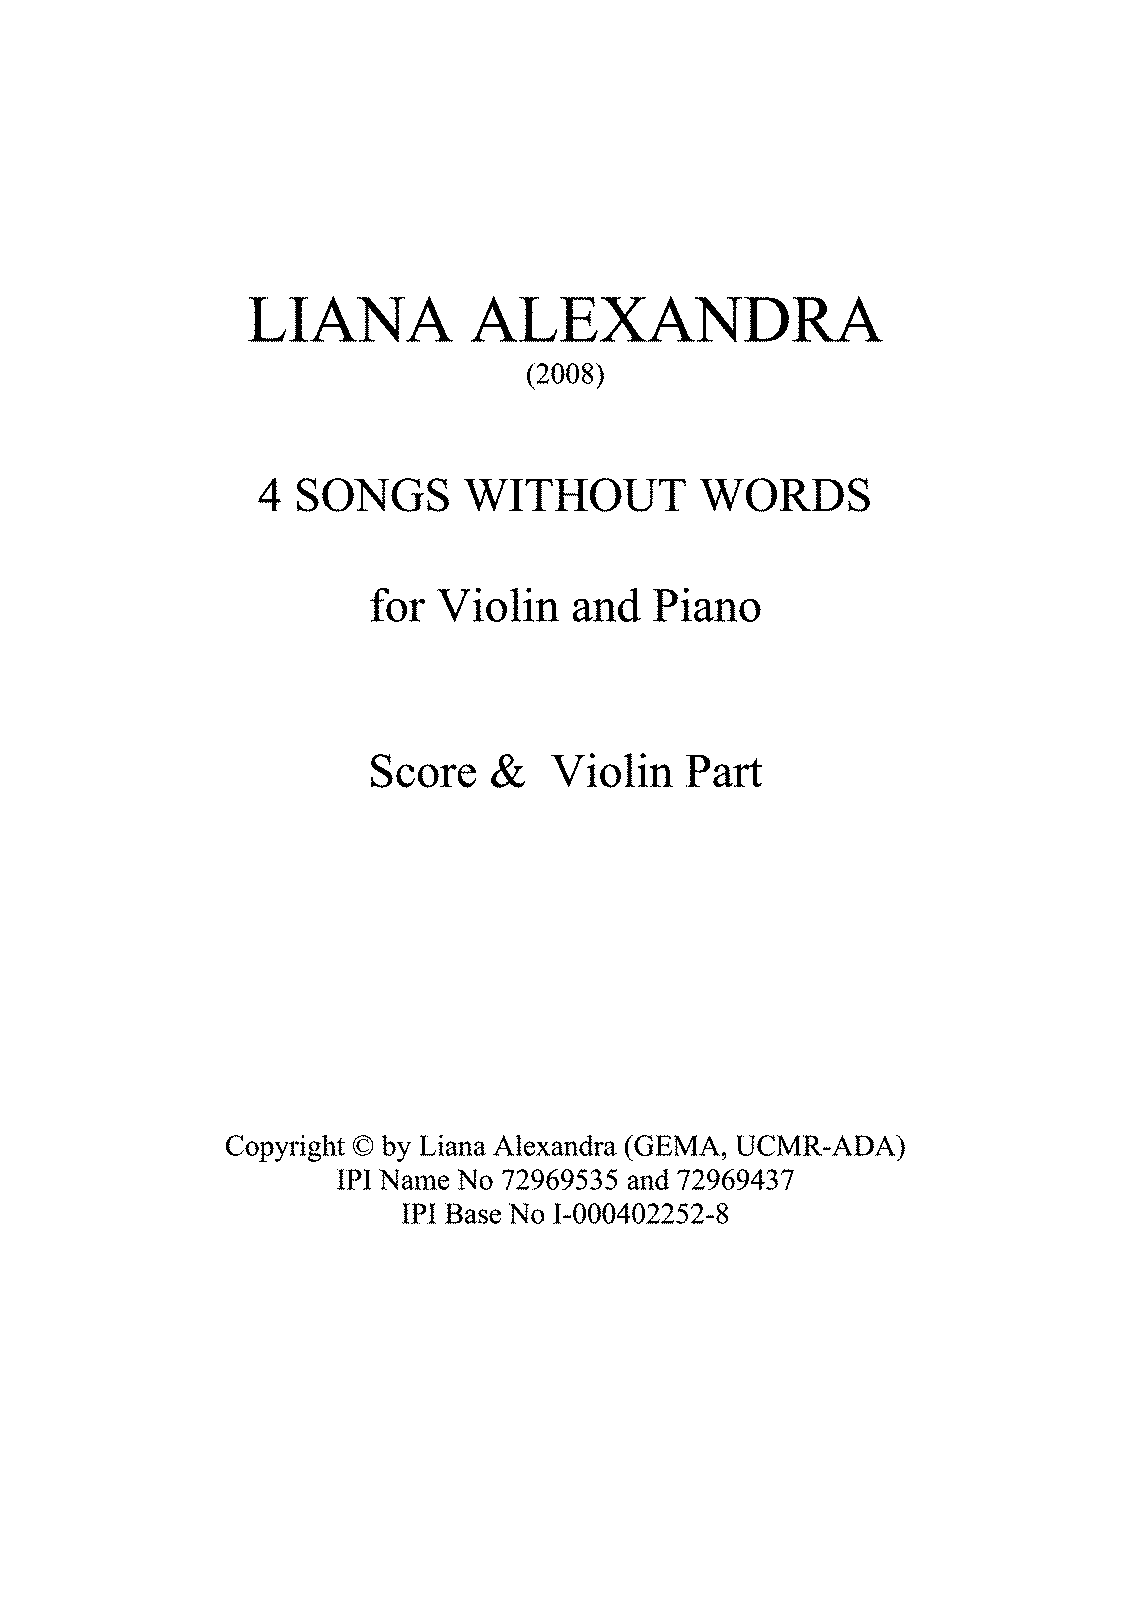 PMLP564047-LianaAlexandra 4SongsWithoutWords Violin&Piano score&part A4.pdf